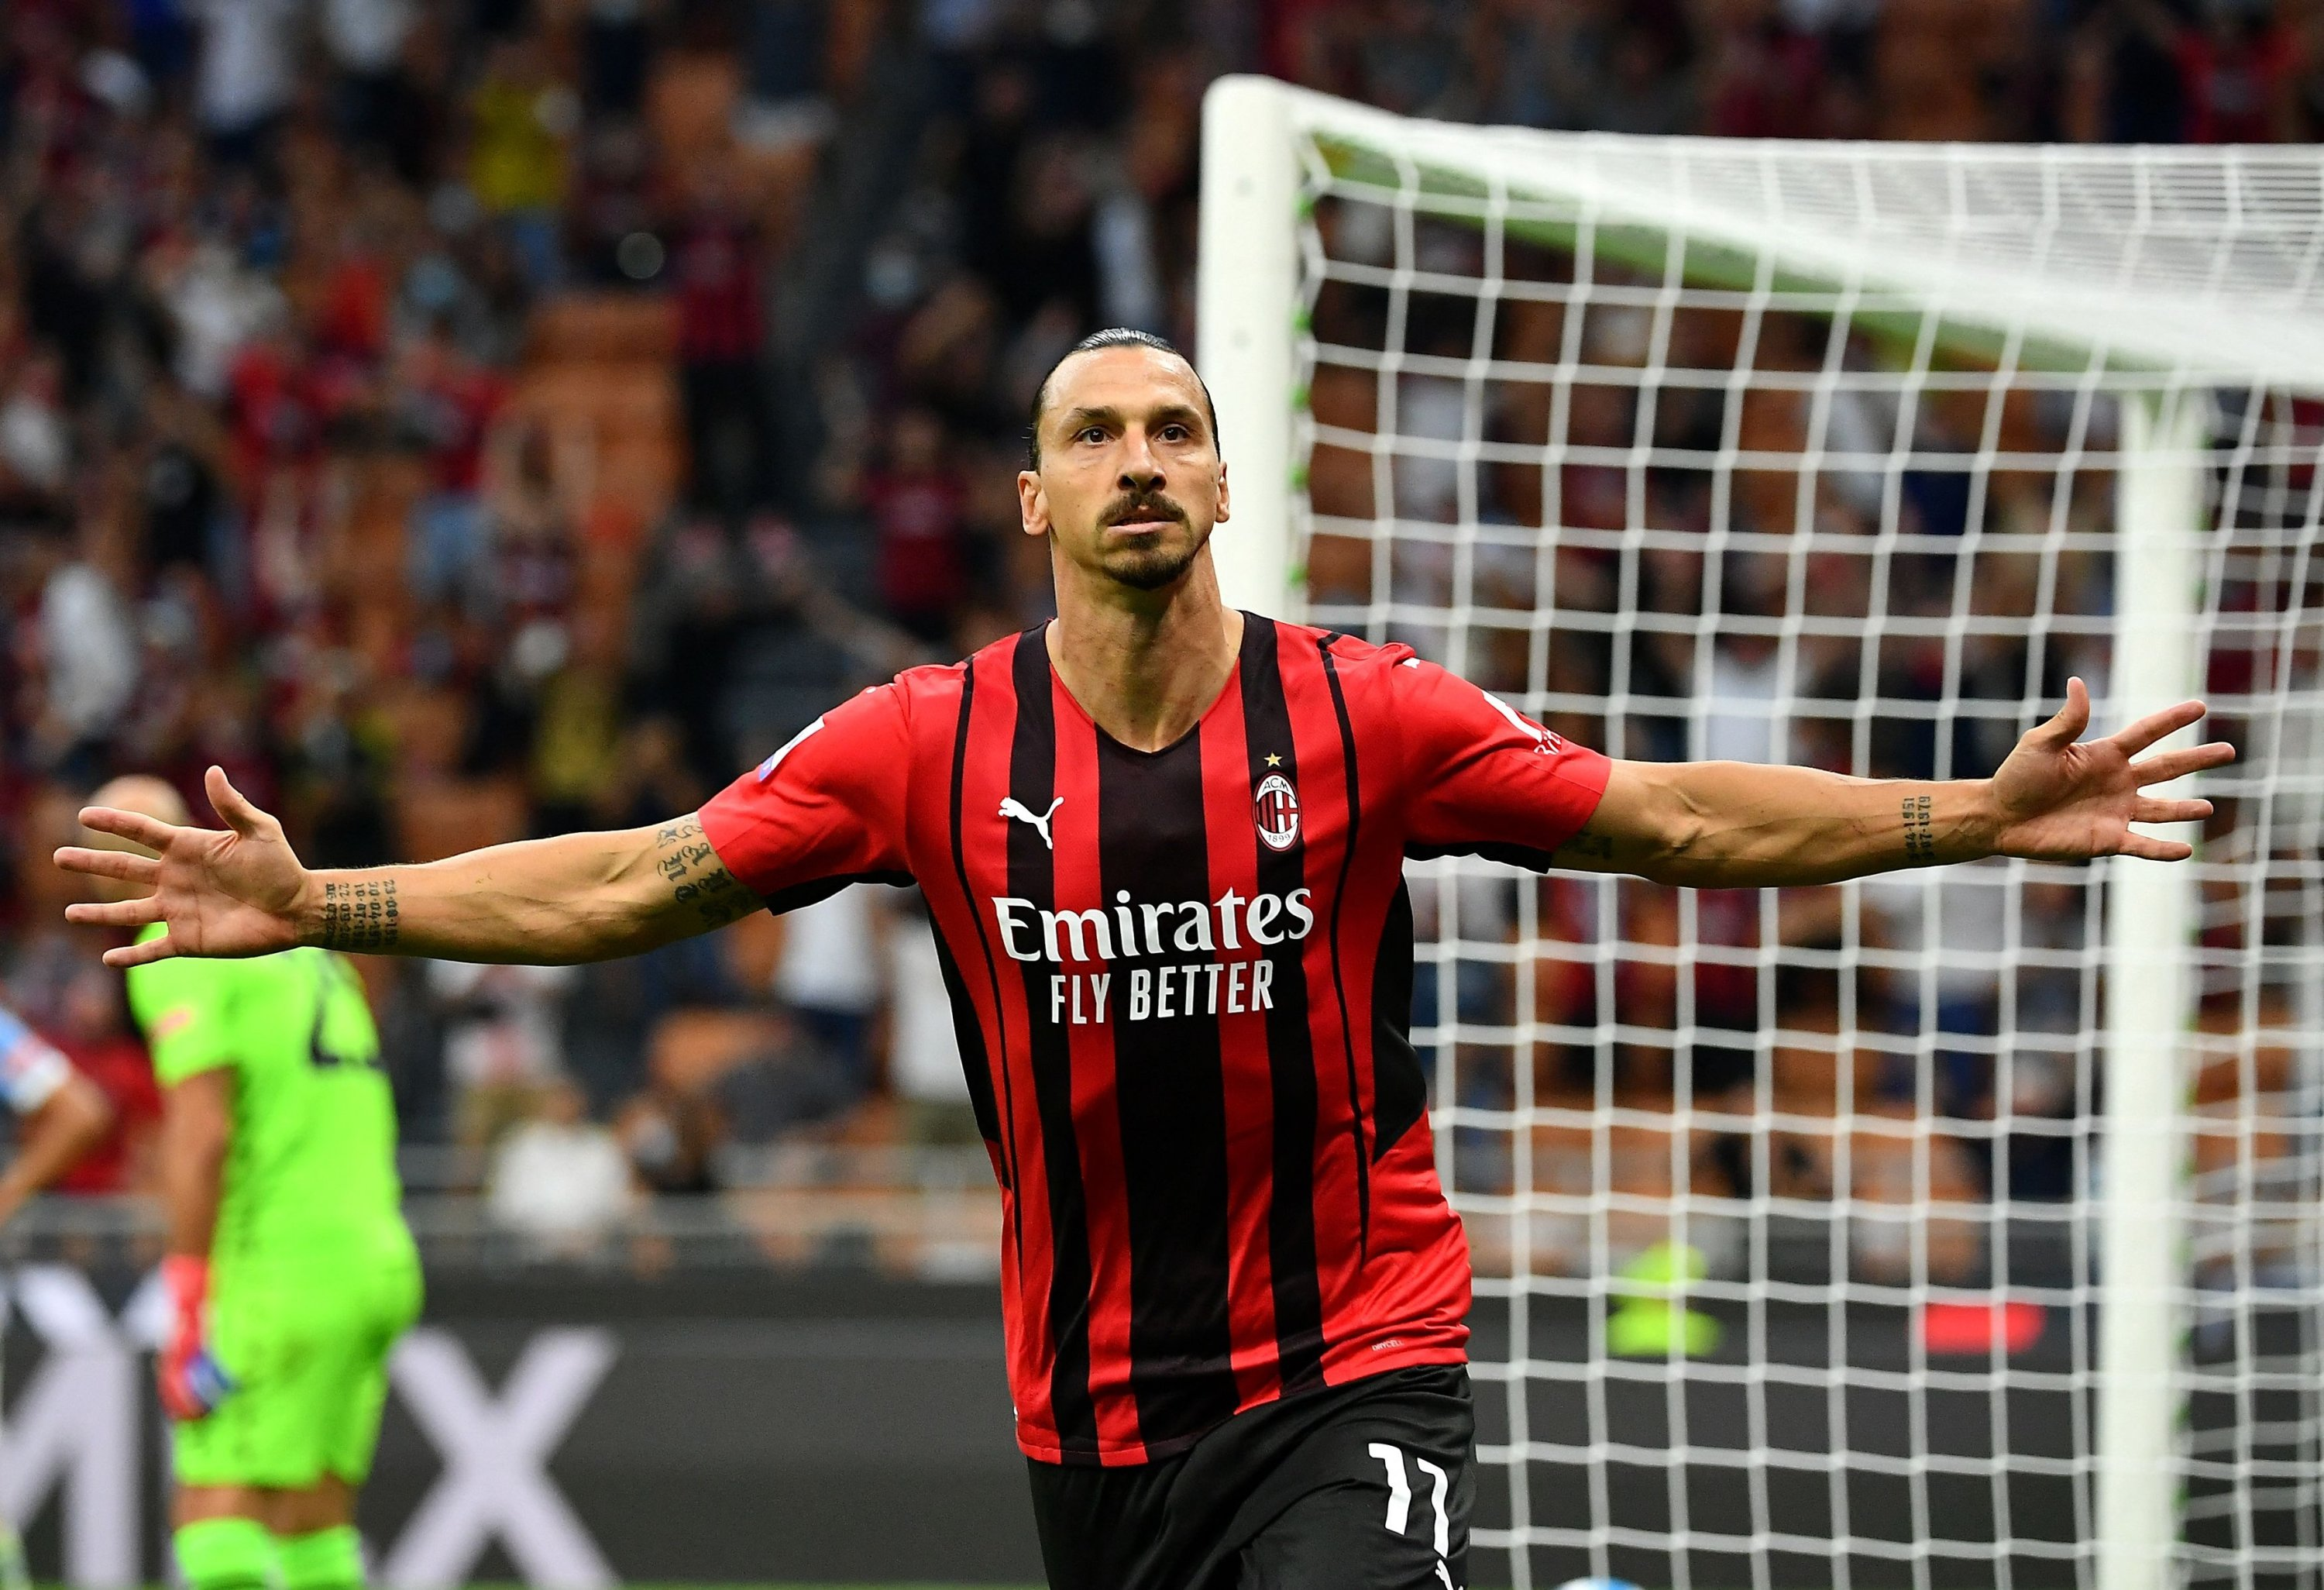 AC Milan's Swedish forward Zlatan Ibrahimovic celebrates after scoring in a Serie A match against Lazio at the San Siro, Milan, Italy, Sept. 12, 2021. (AFP Photo)